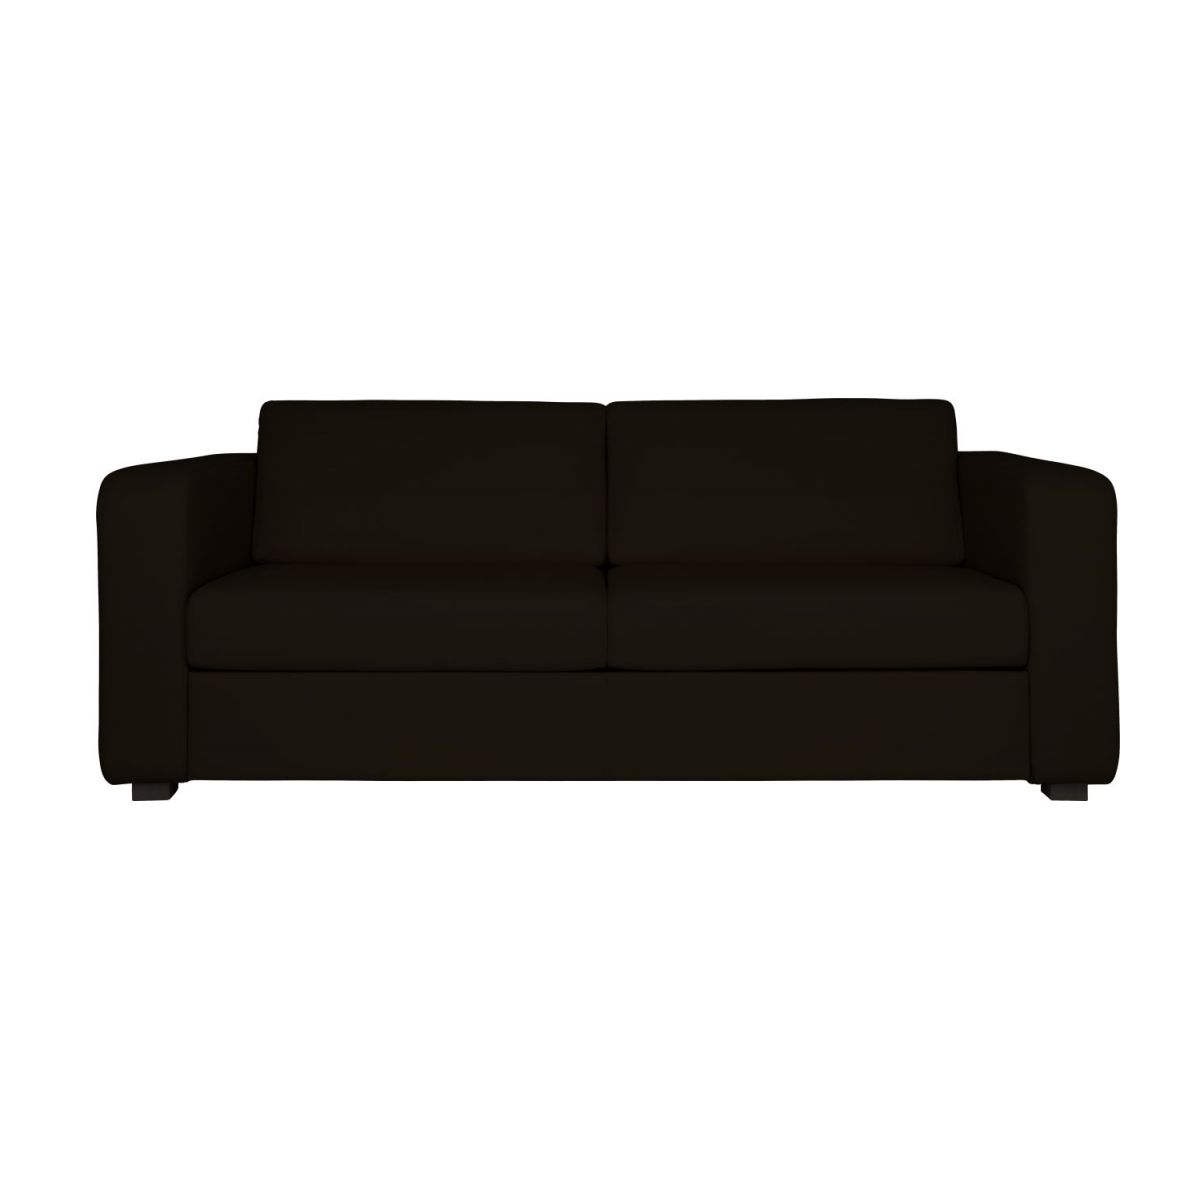 3-person leather sofa n°4